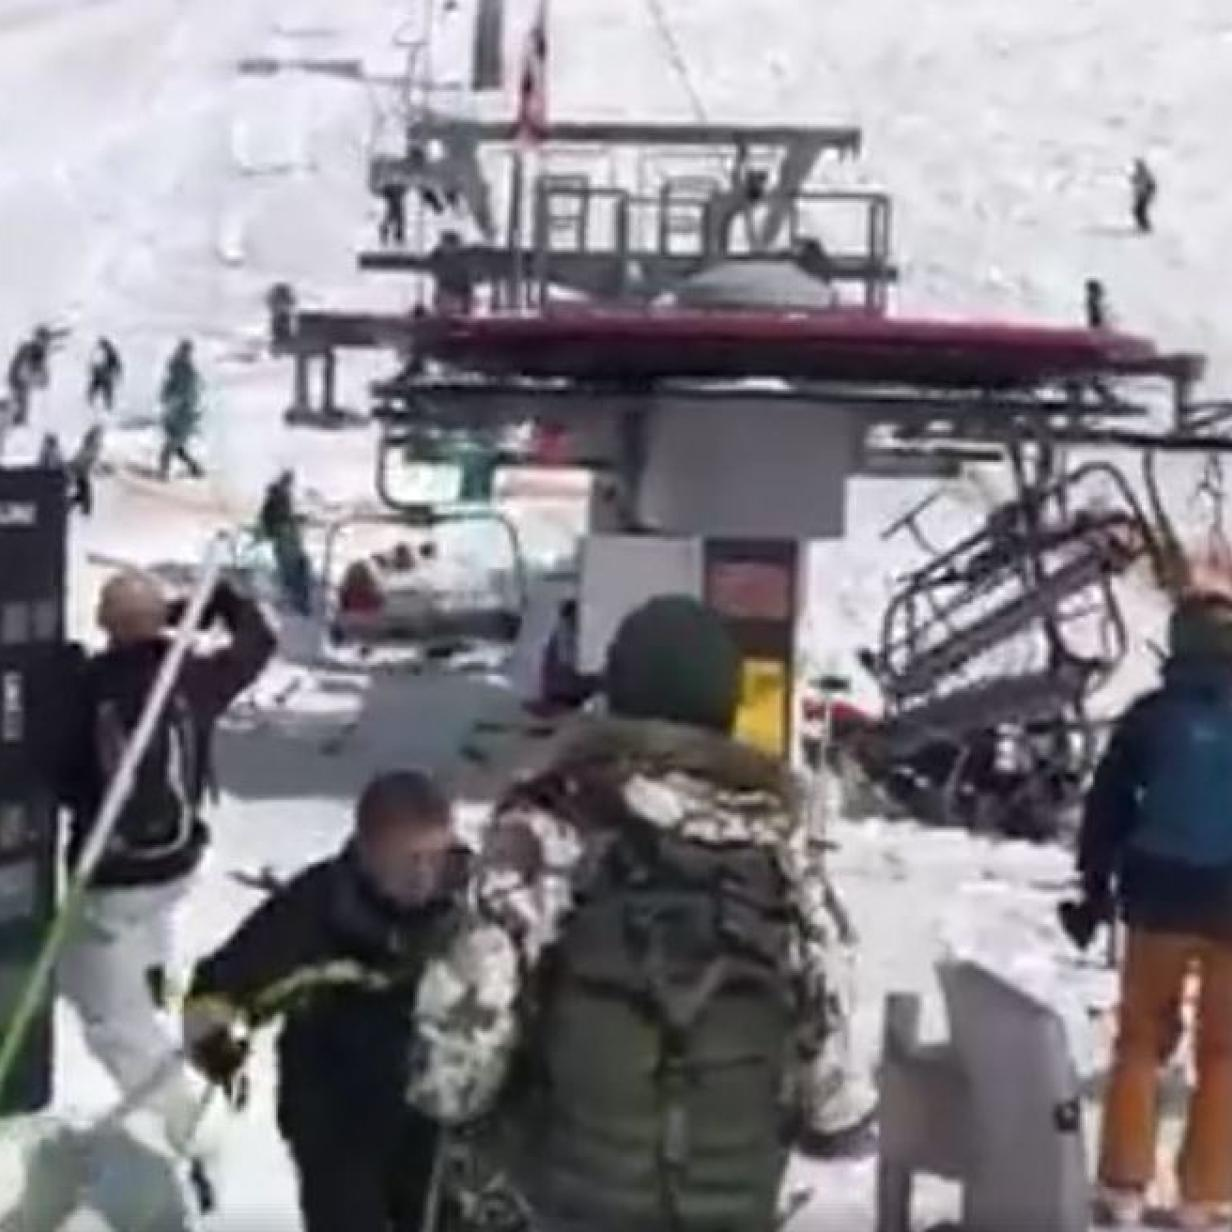 Sessel Unfall Georgien Video Passagiere Aus Skilift In Georgien Geschleudert Kurier At